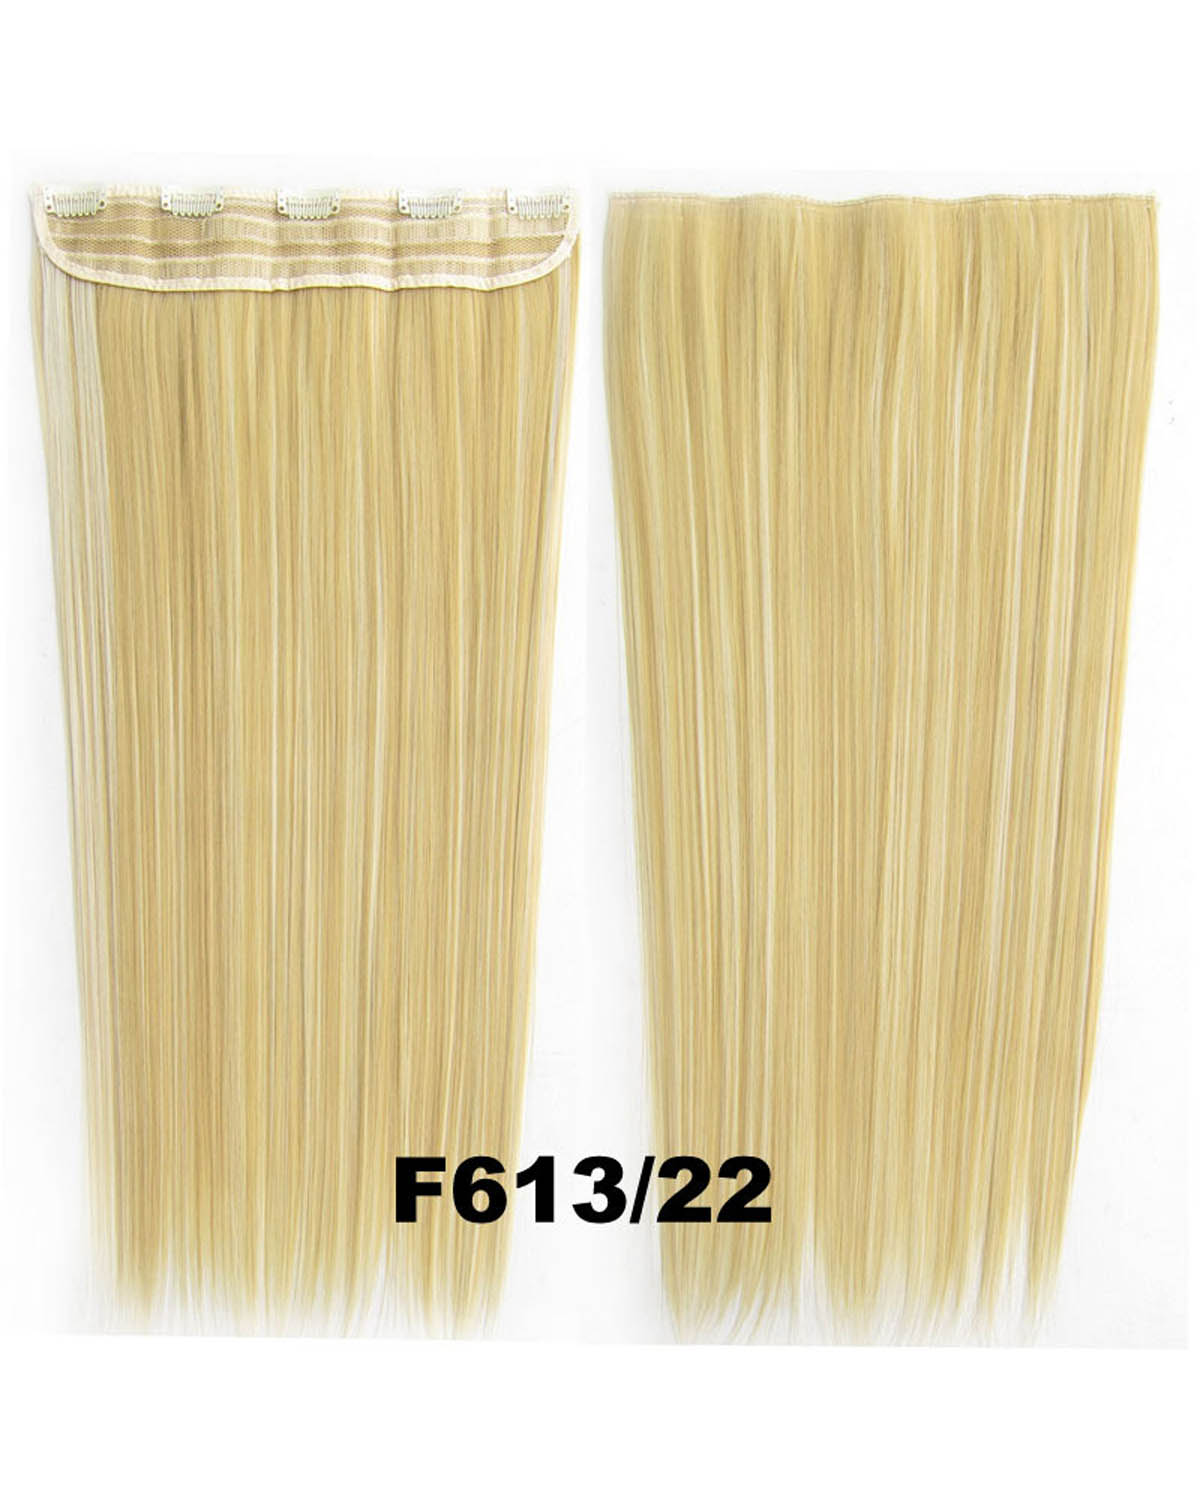 24 Inch Female The Best Long and Straight One Piece 5 Clips Clip in Synthetic Hair Extension F613/22